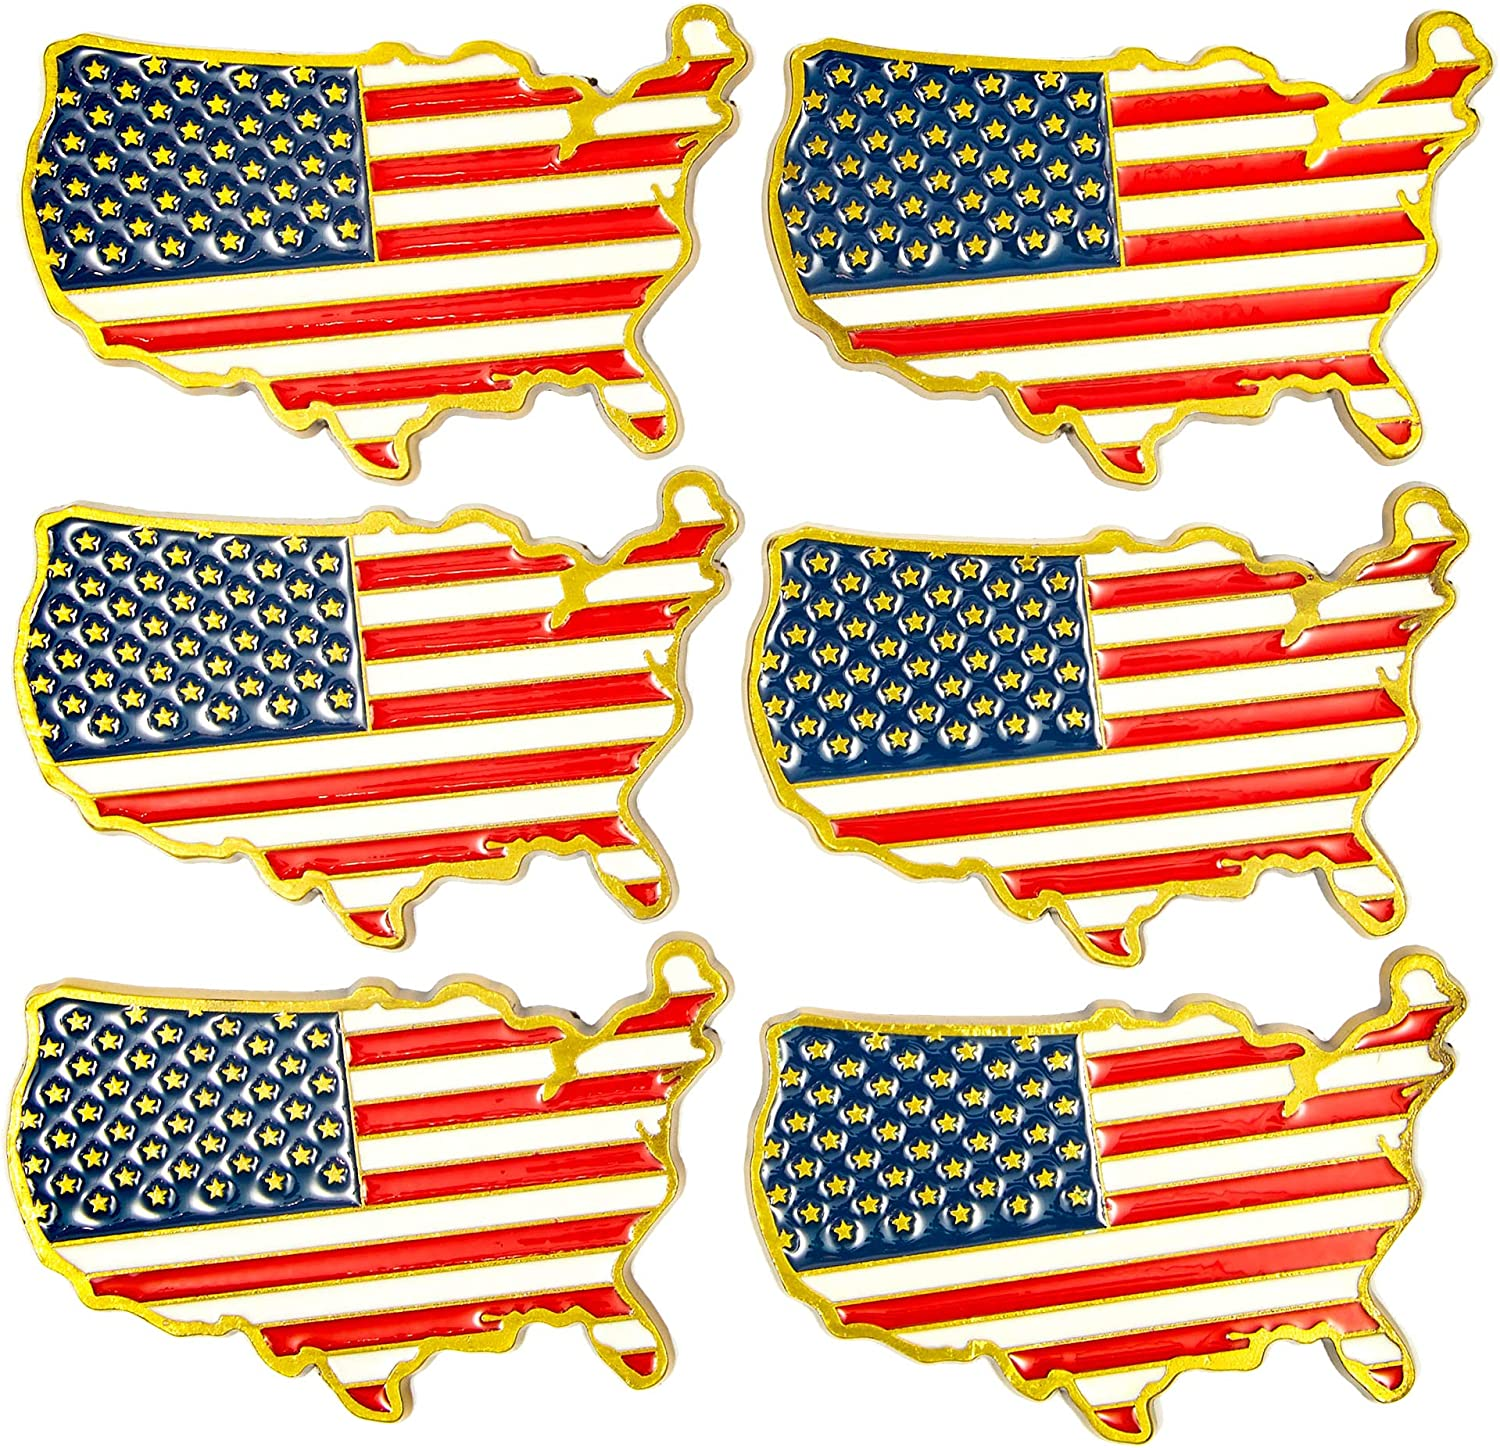 Juvale American Flag Magnets for Fridge – Pack of 6, 3 x 1.5 Inches